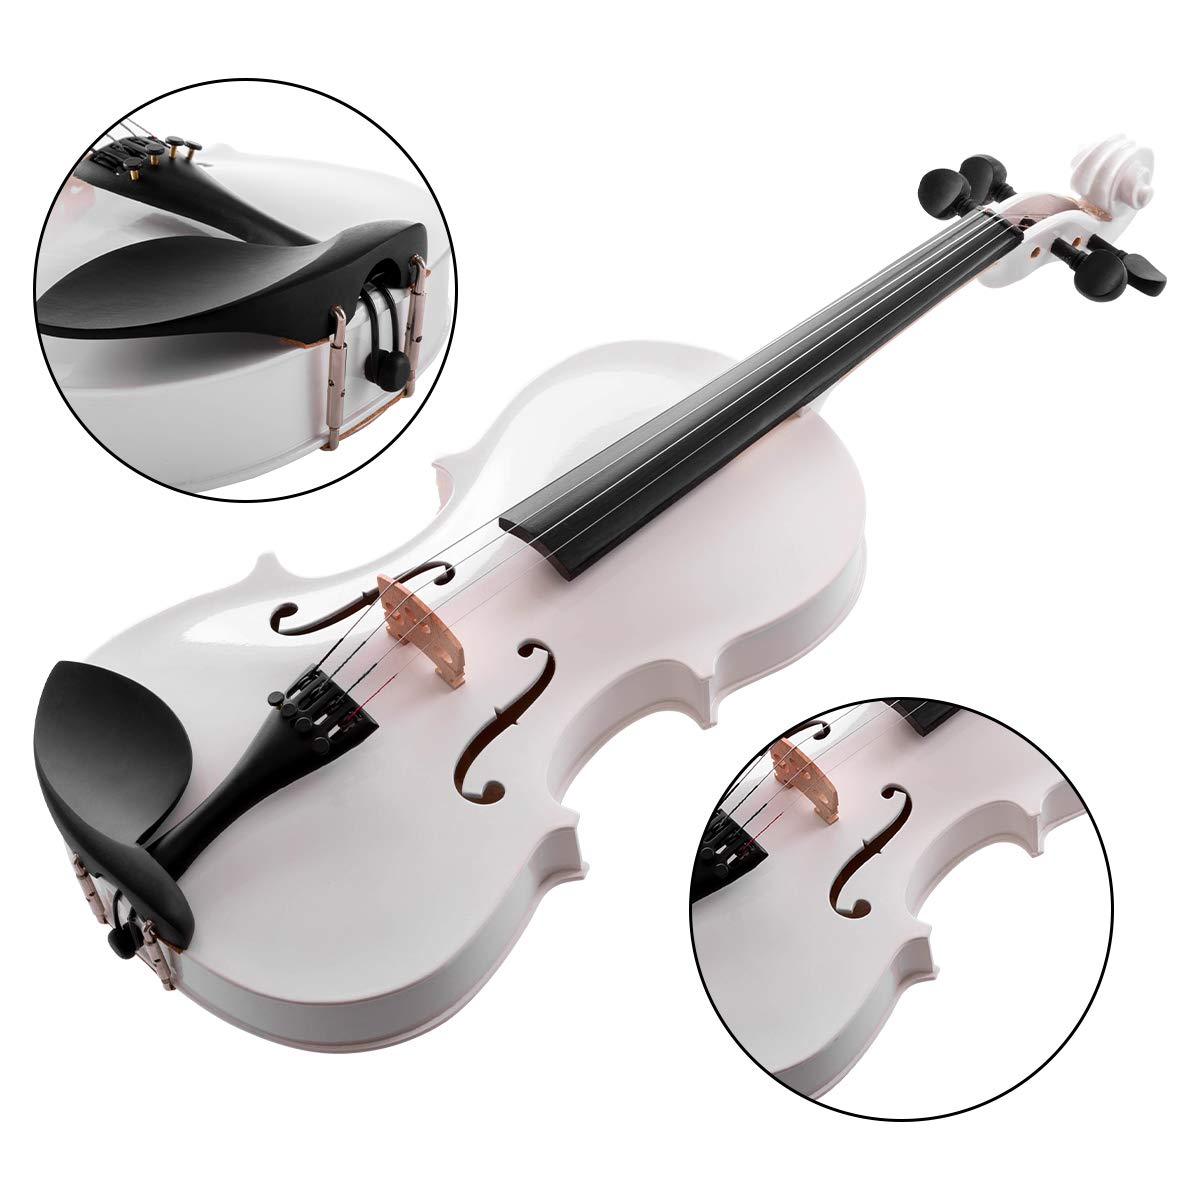 ARTALL 4/4 Handmade Student Acoustic Violin Beginner Pack with Bow, Hard Case, Chin Rest, Tuner, Spare Strings, Rosin and Bridge, Glossy White by ARTALL (Image #5)